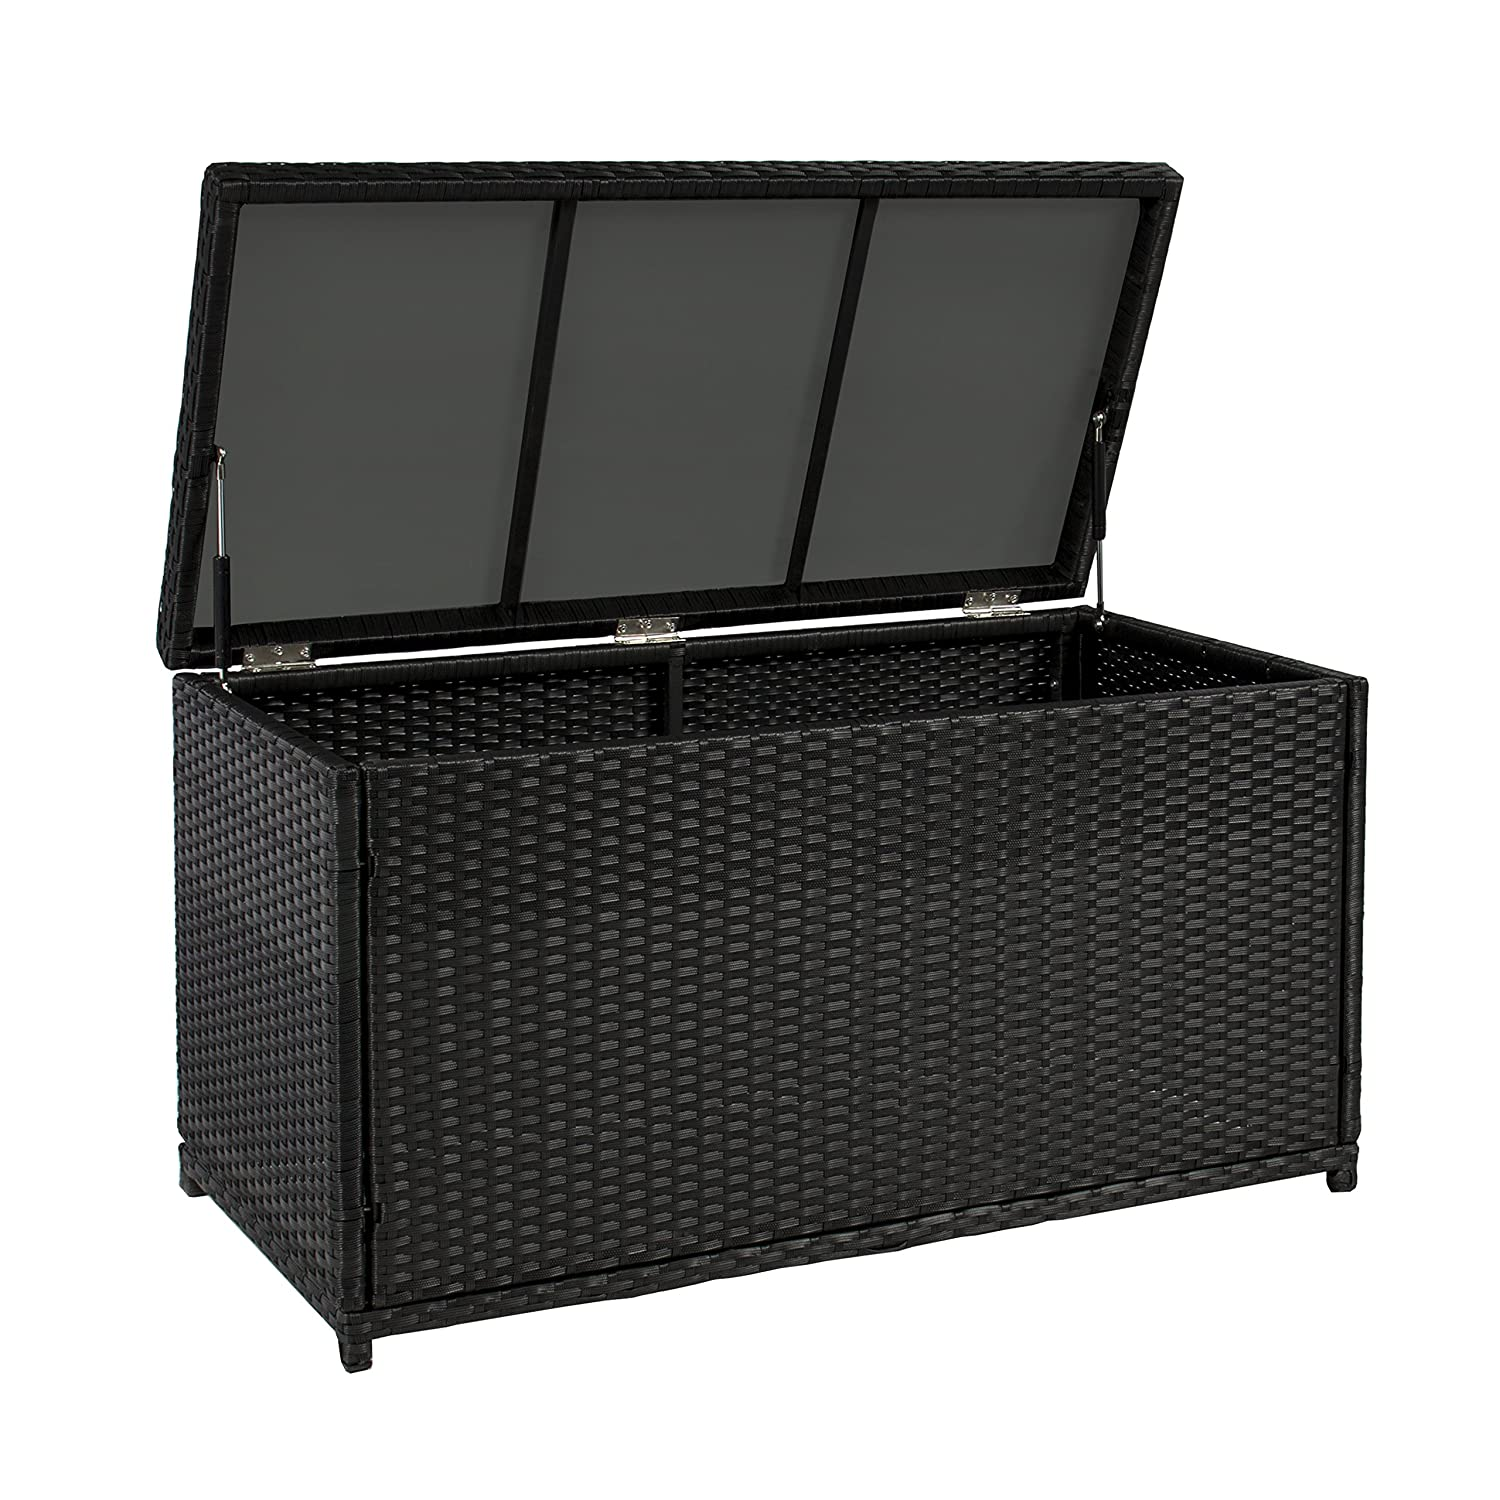 Wonderful Amazon.com : Best ChoiceProducts Wicker Deck Storage Box Weather Proof Patio  Furniture Pool Toy Container : Garden U0026 Outdoor